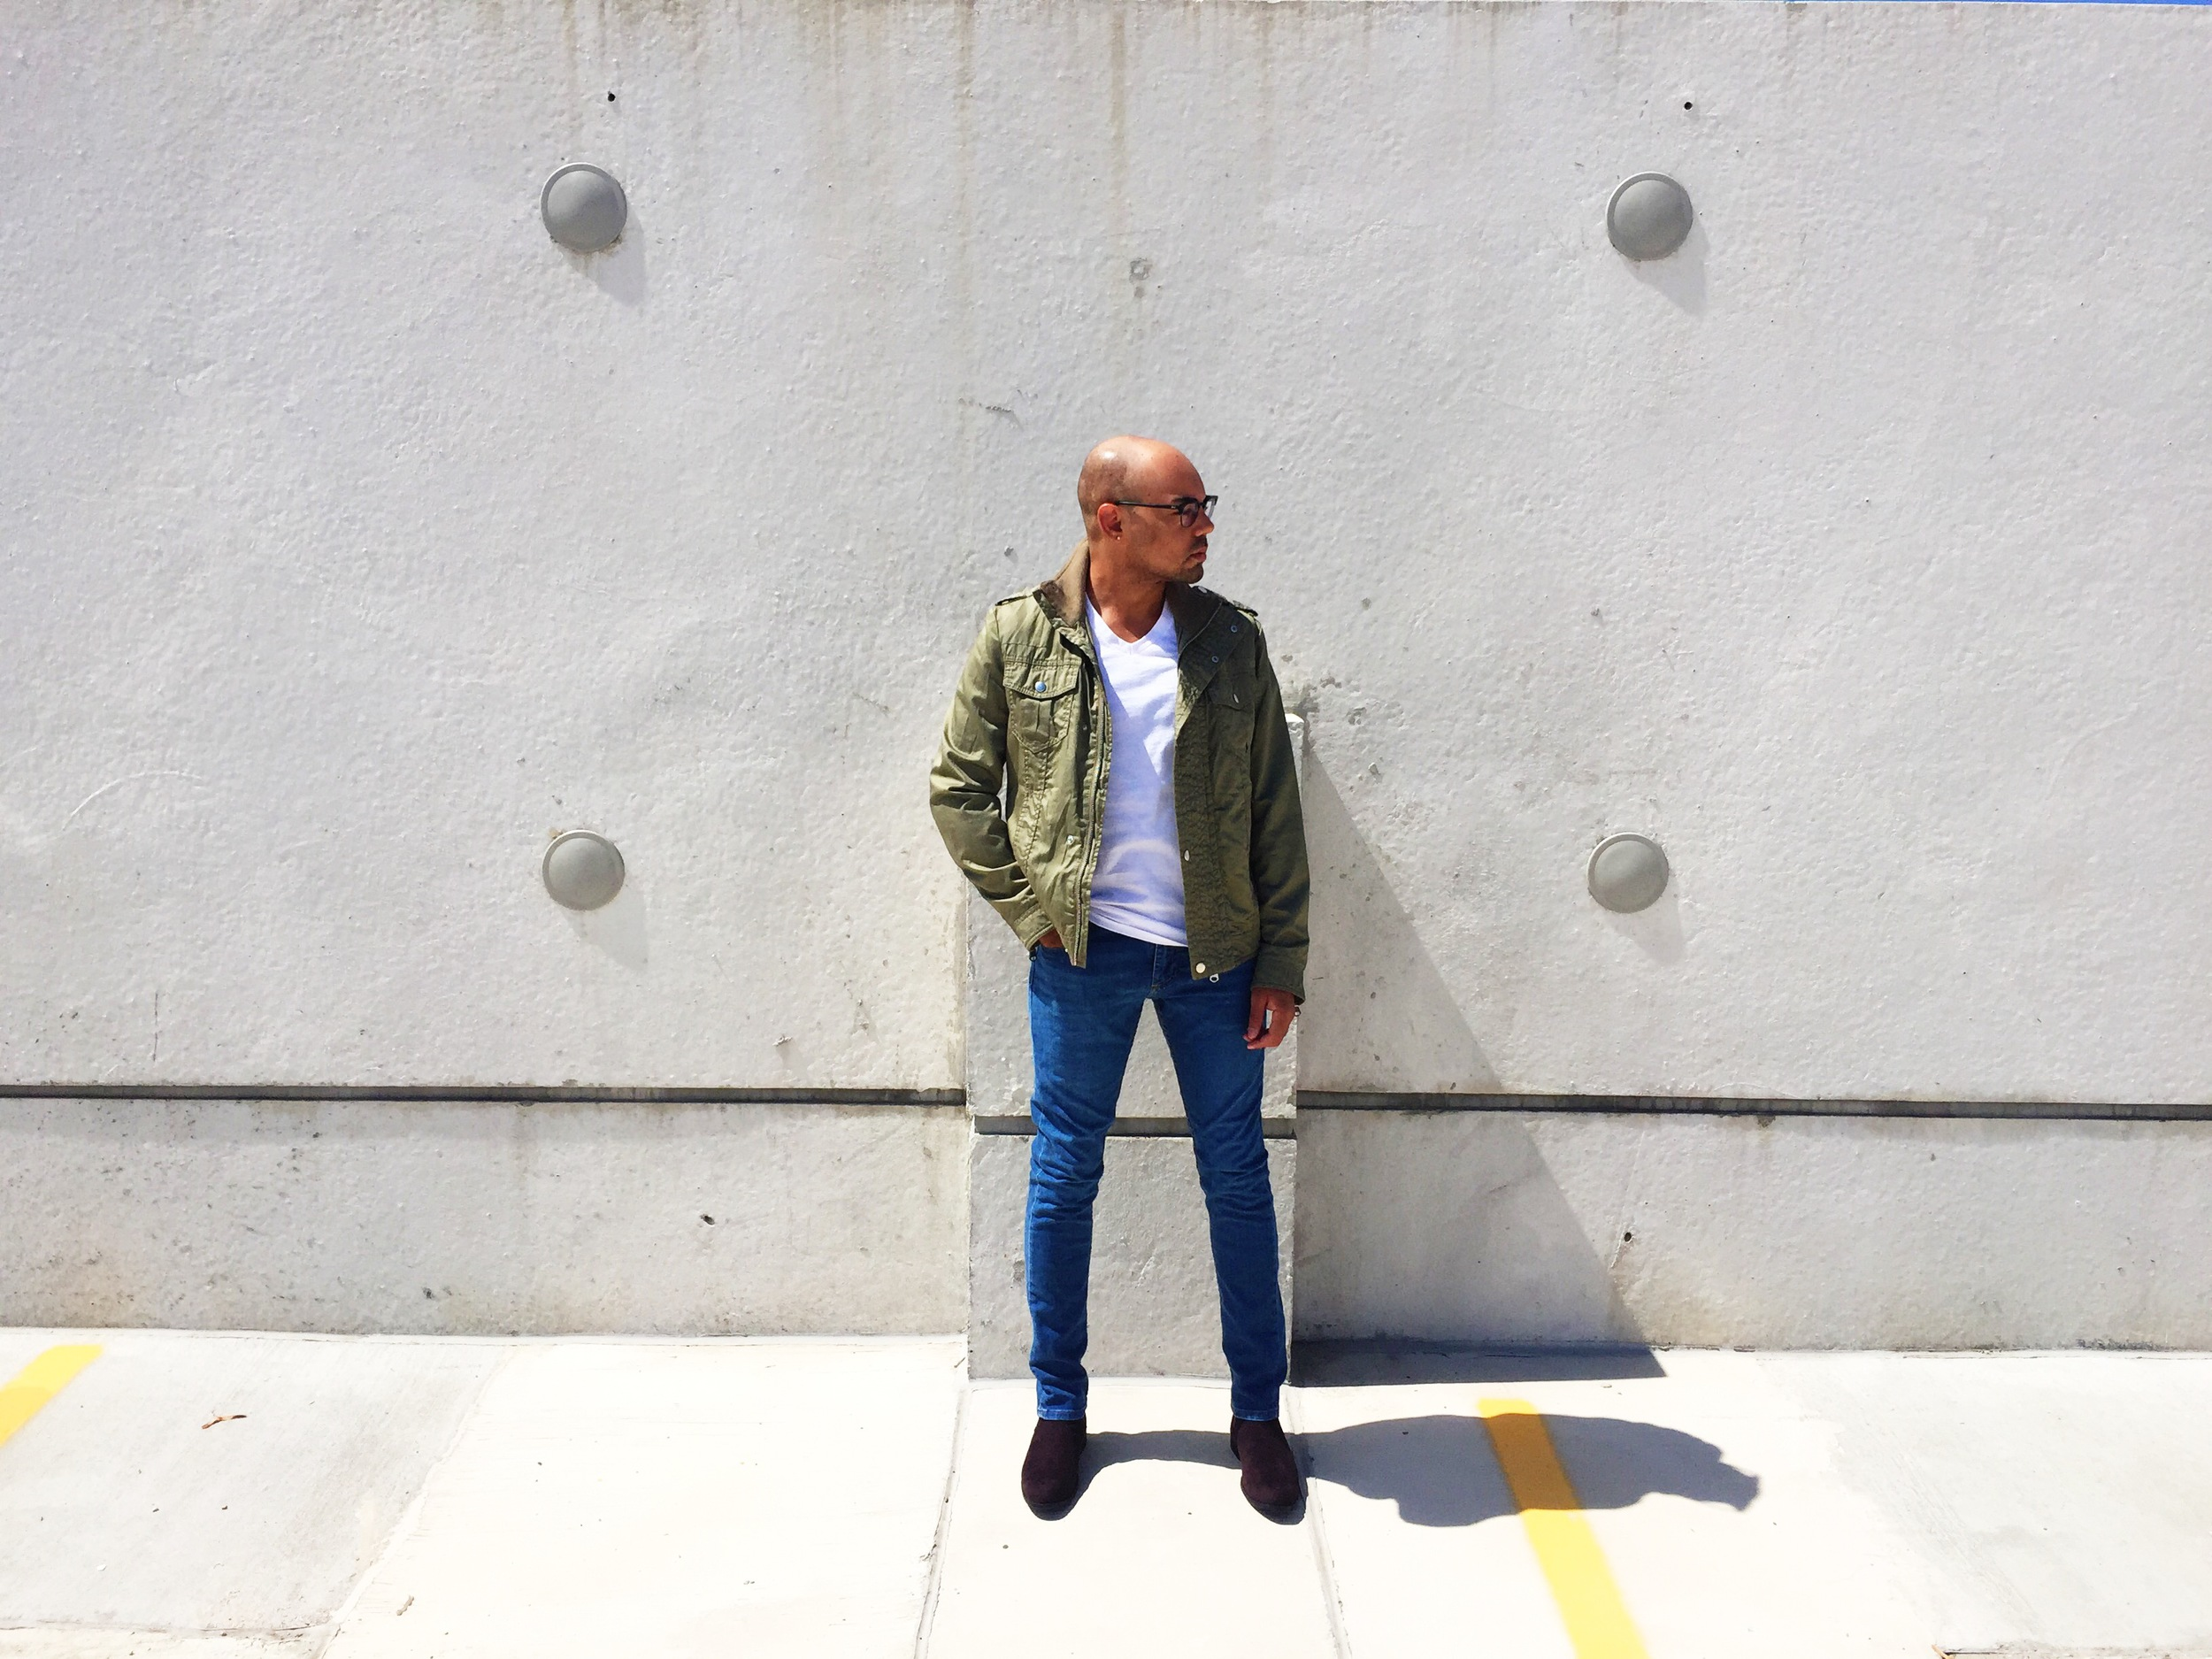 sam-c-perry-military-jacket-suede-chelsea-boots-main.jpg